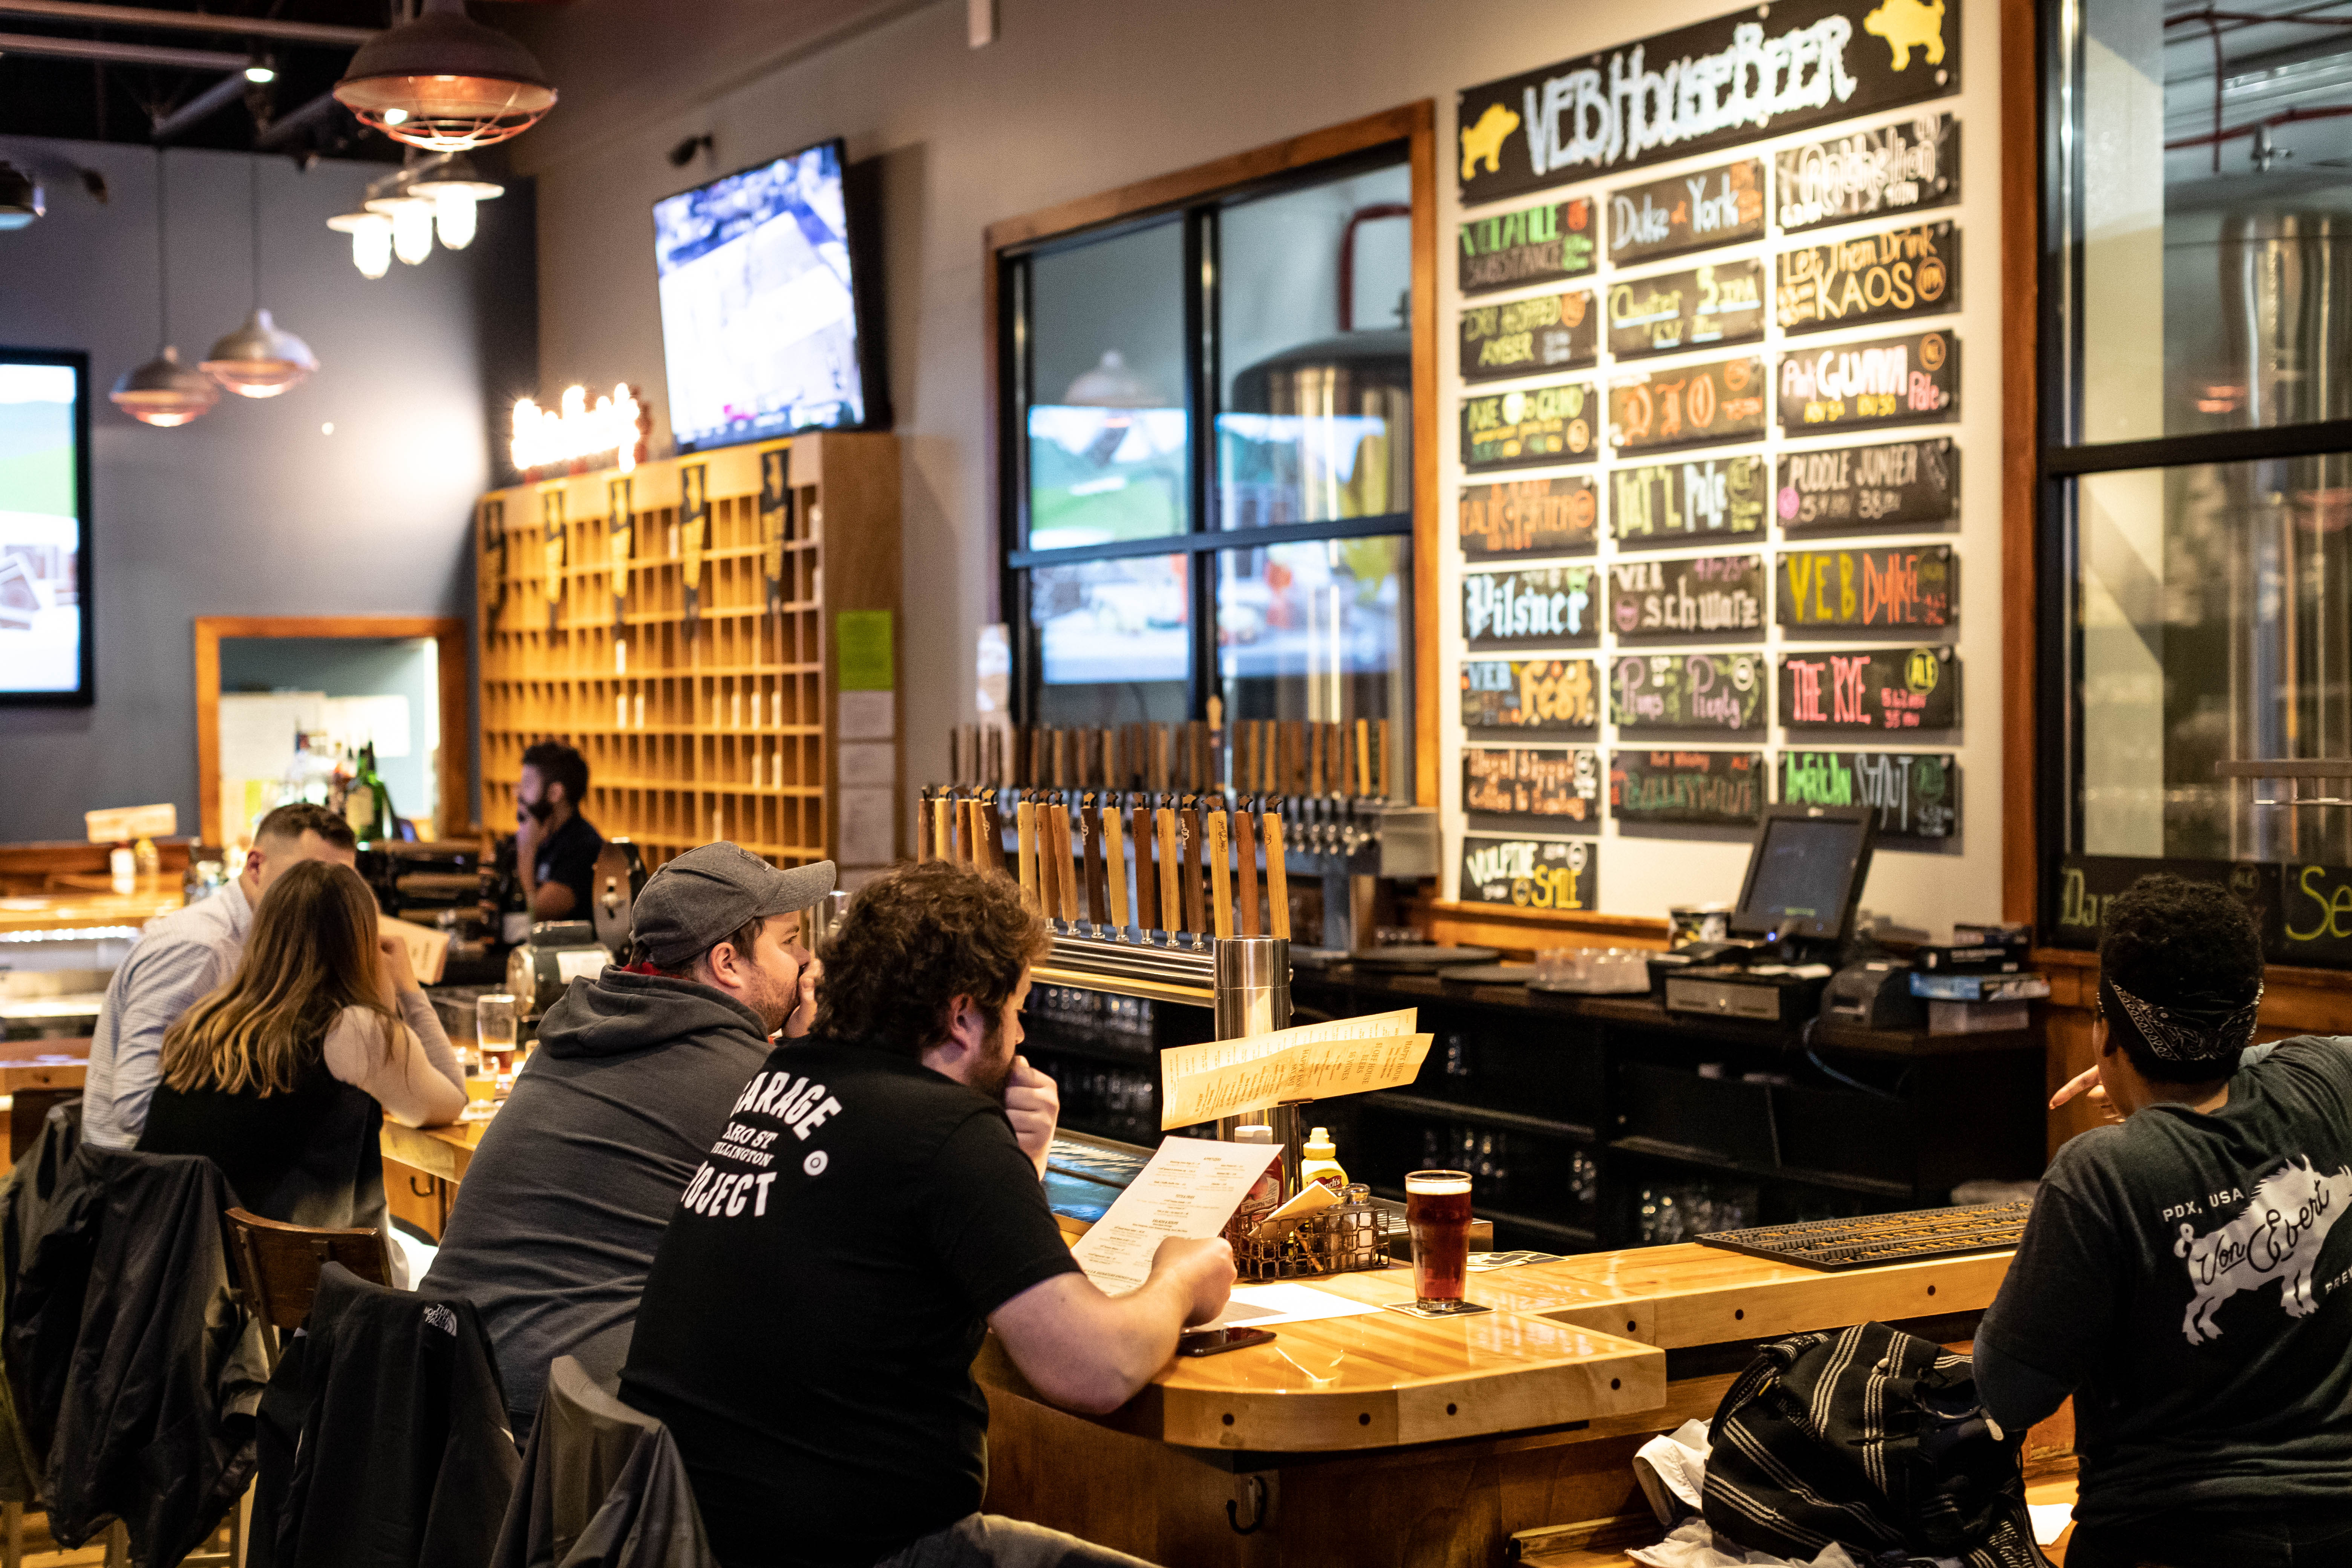 Inside the bar area at Von Ebert Brewing located in the Pearl District. (image courtesy of Von Ebert Brewing)